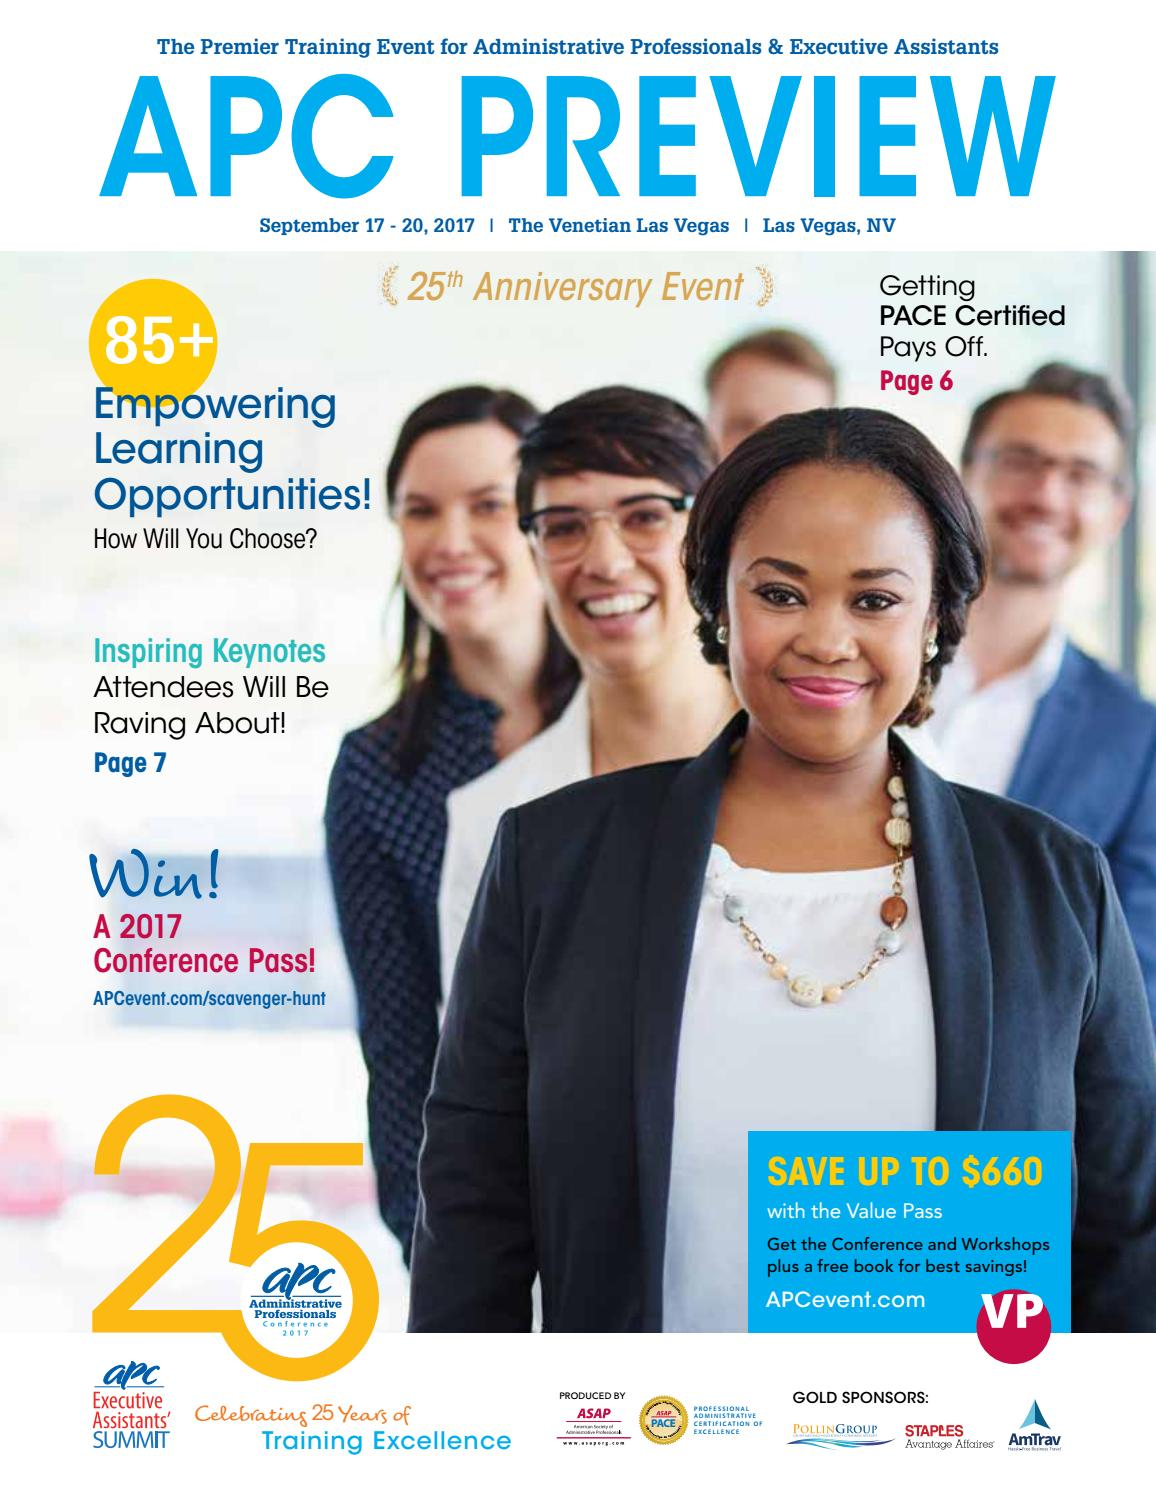 Apc 2017 conference preview by diversified communications issuu fandeluxe Images